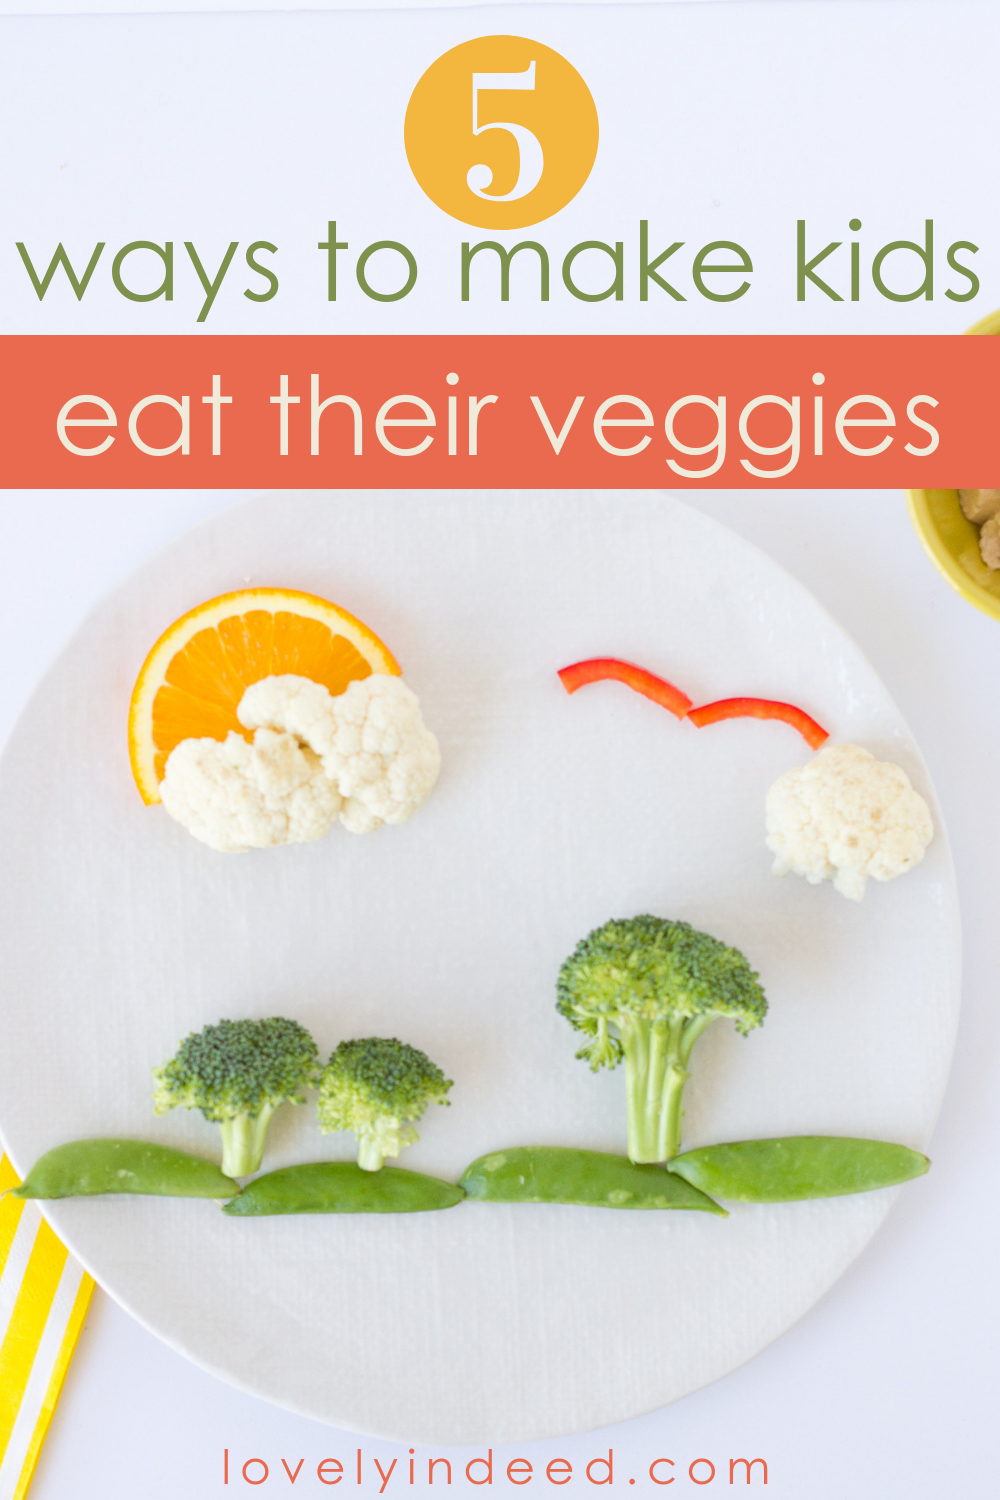 how to get more veggies into diet